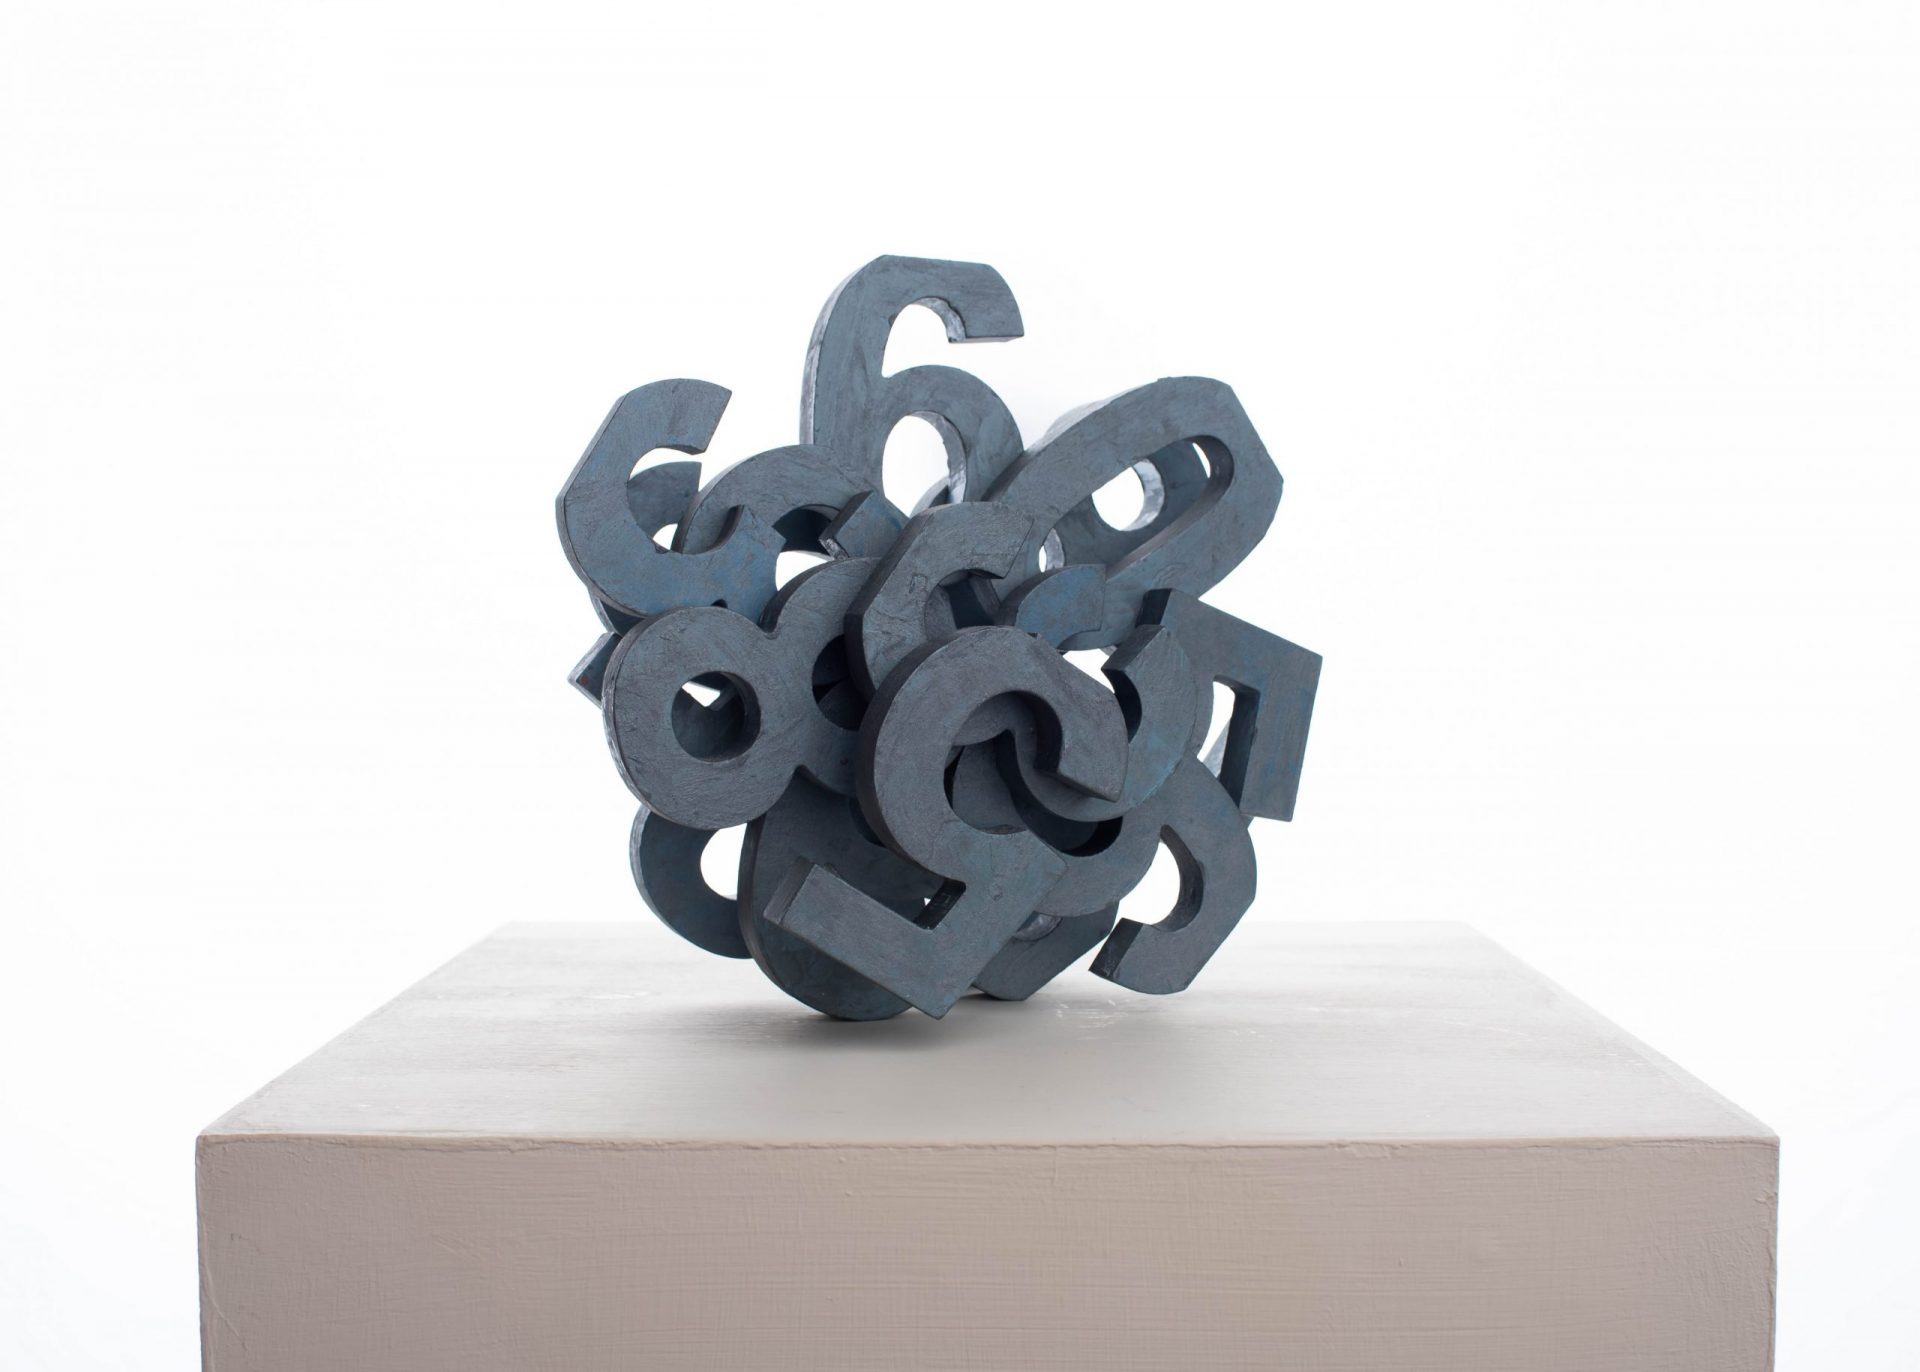 Chaos Theorem Sculpture